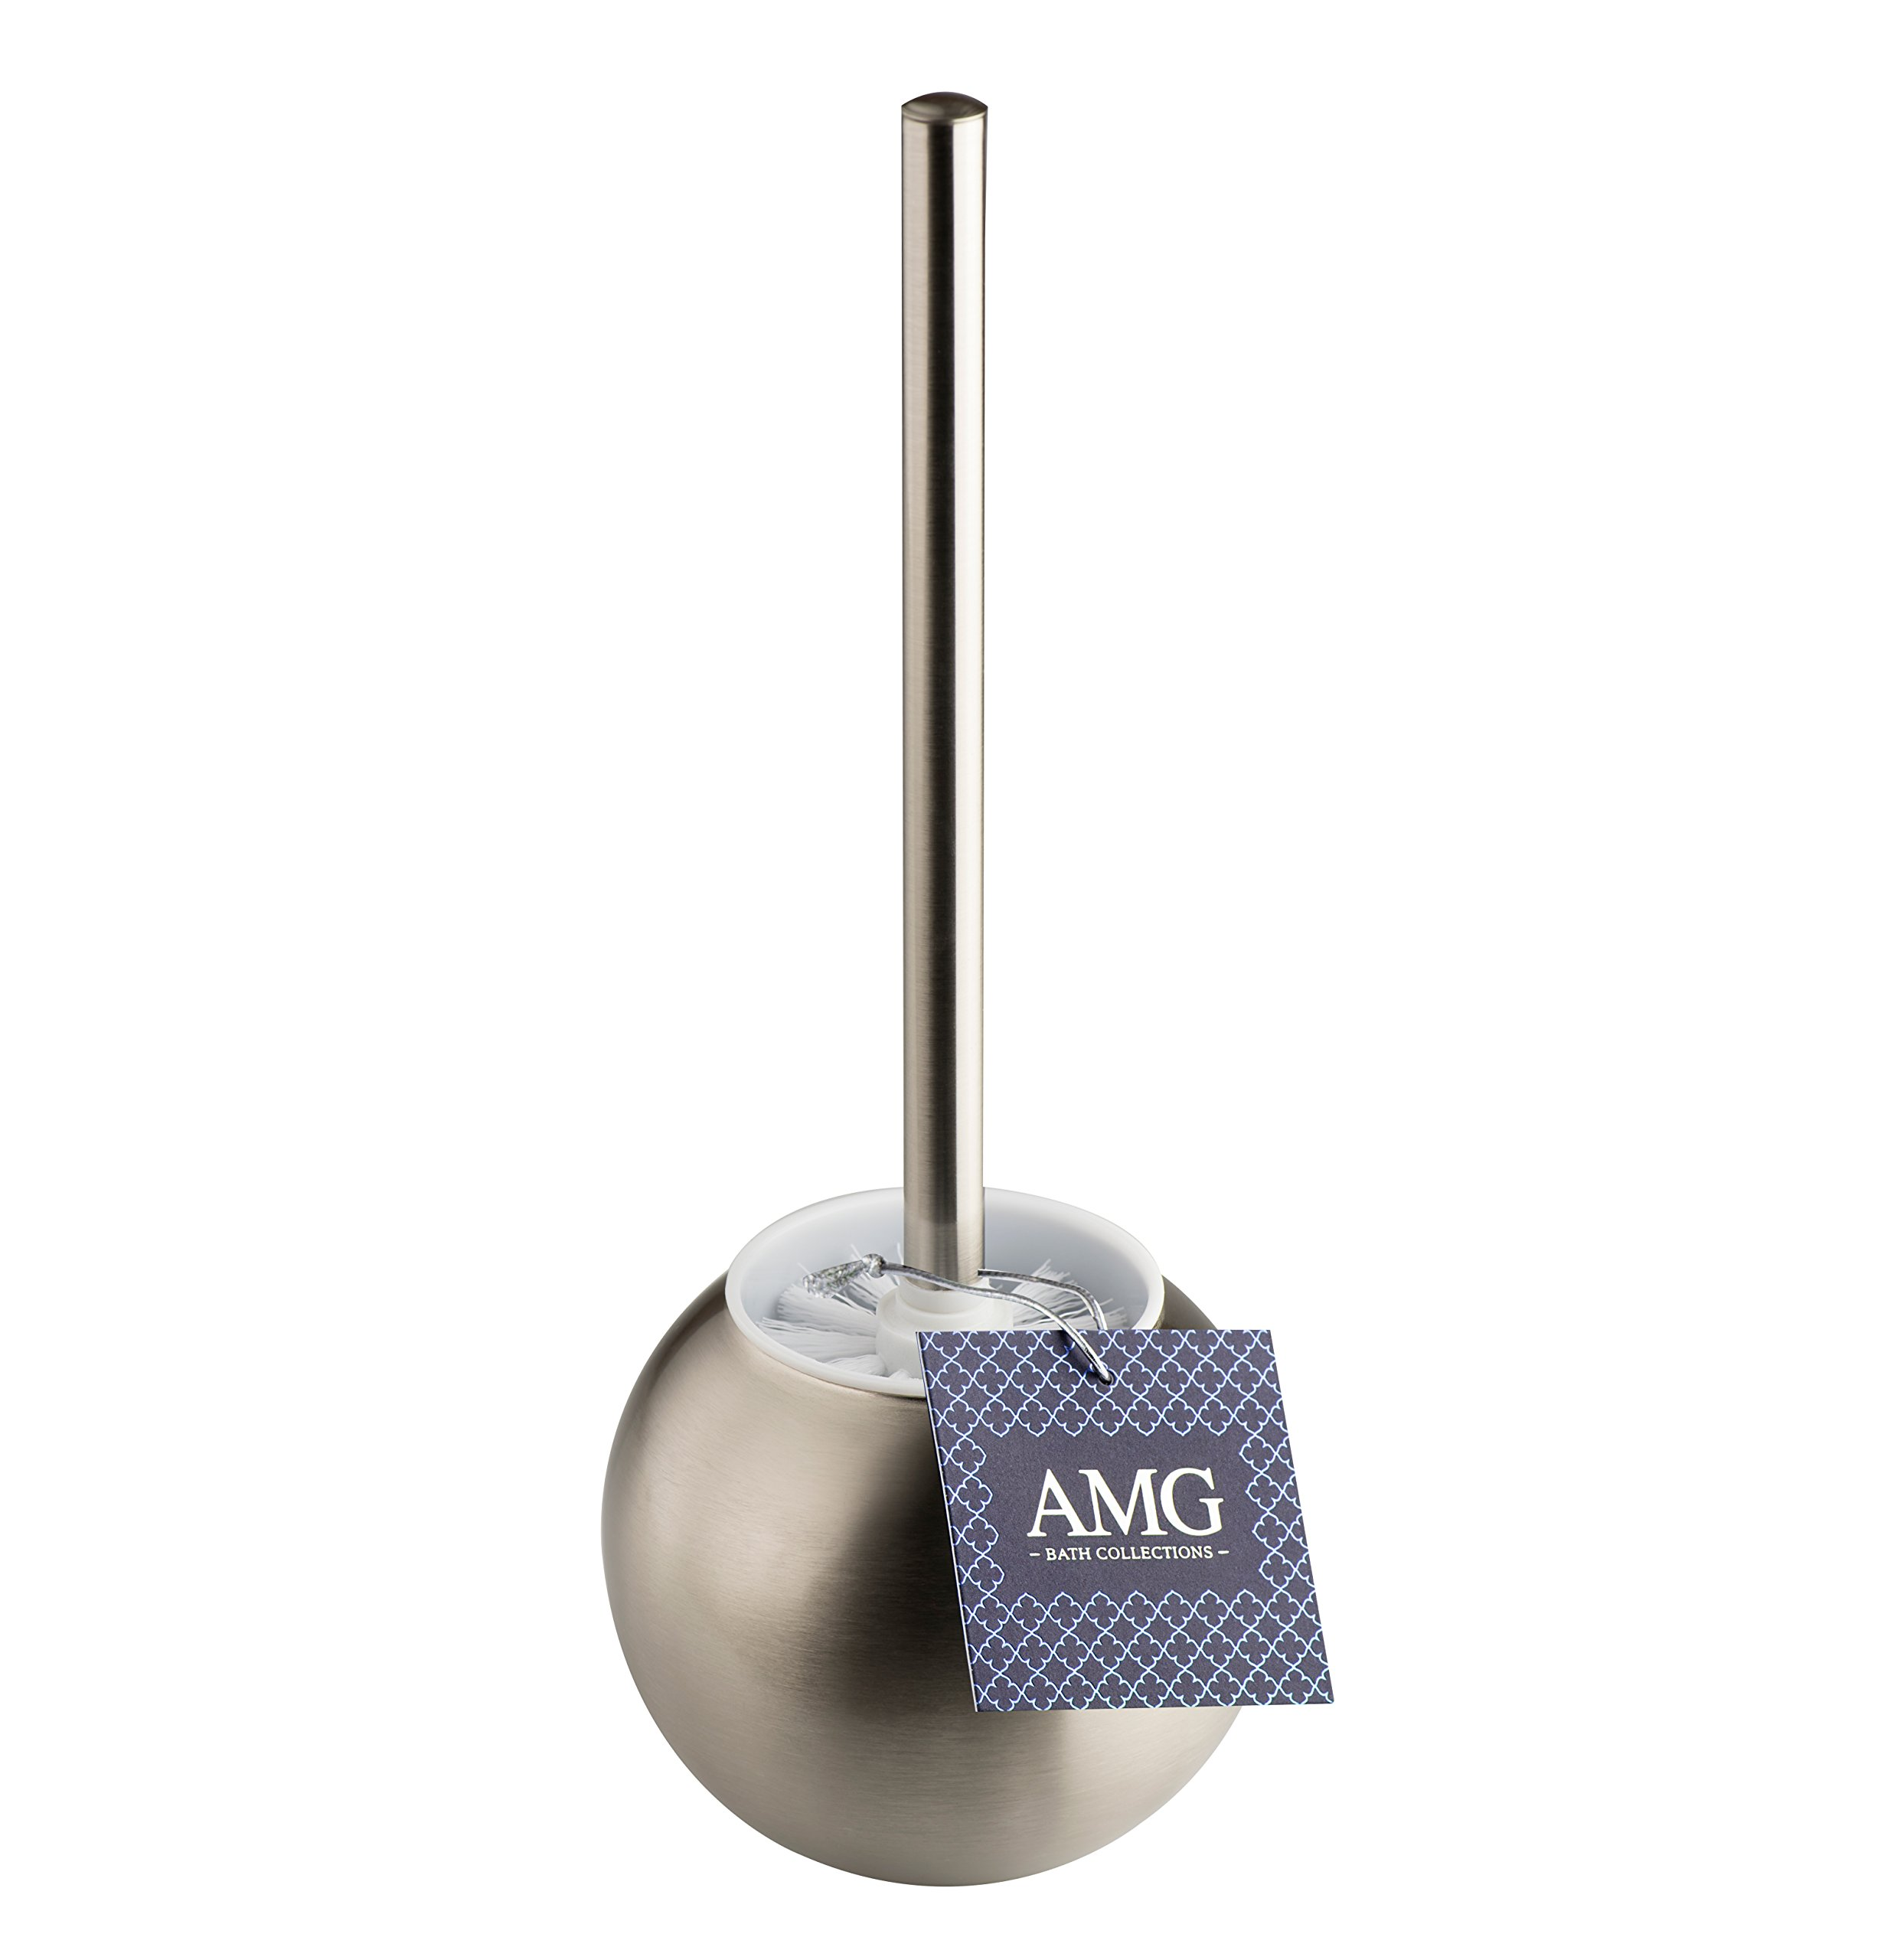 AMG and Enchante Accessories, Toilet Brush and Ball Holder, TB100001 SNI, Satin Nickel by AMG (Image #6)